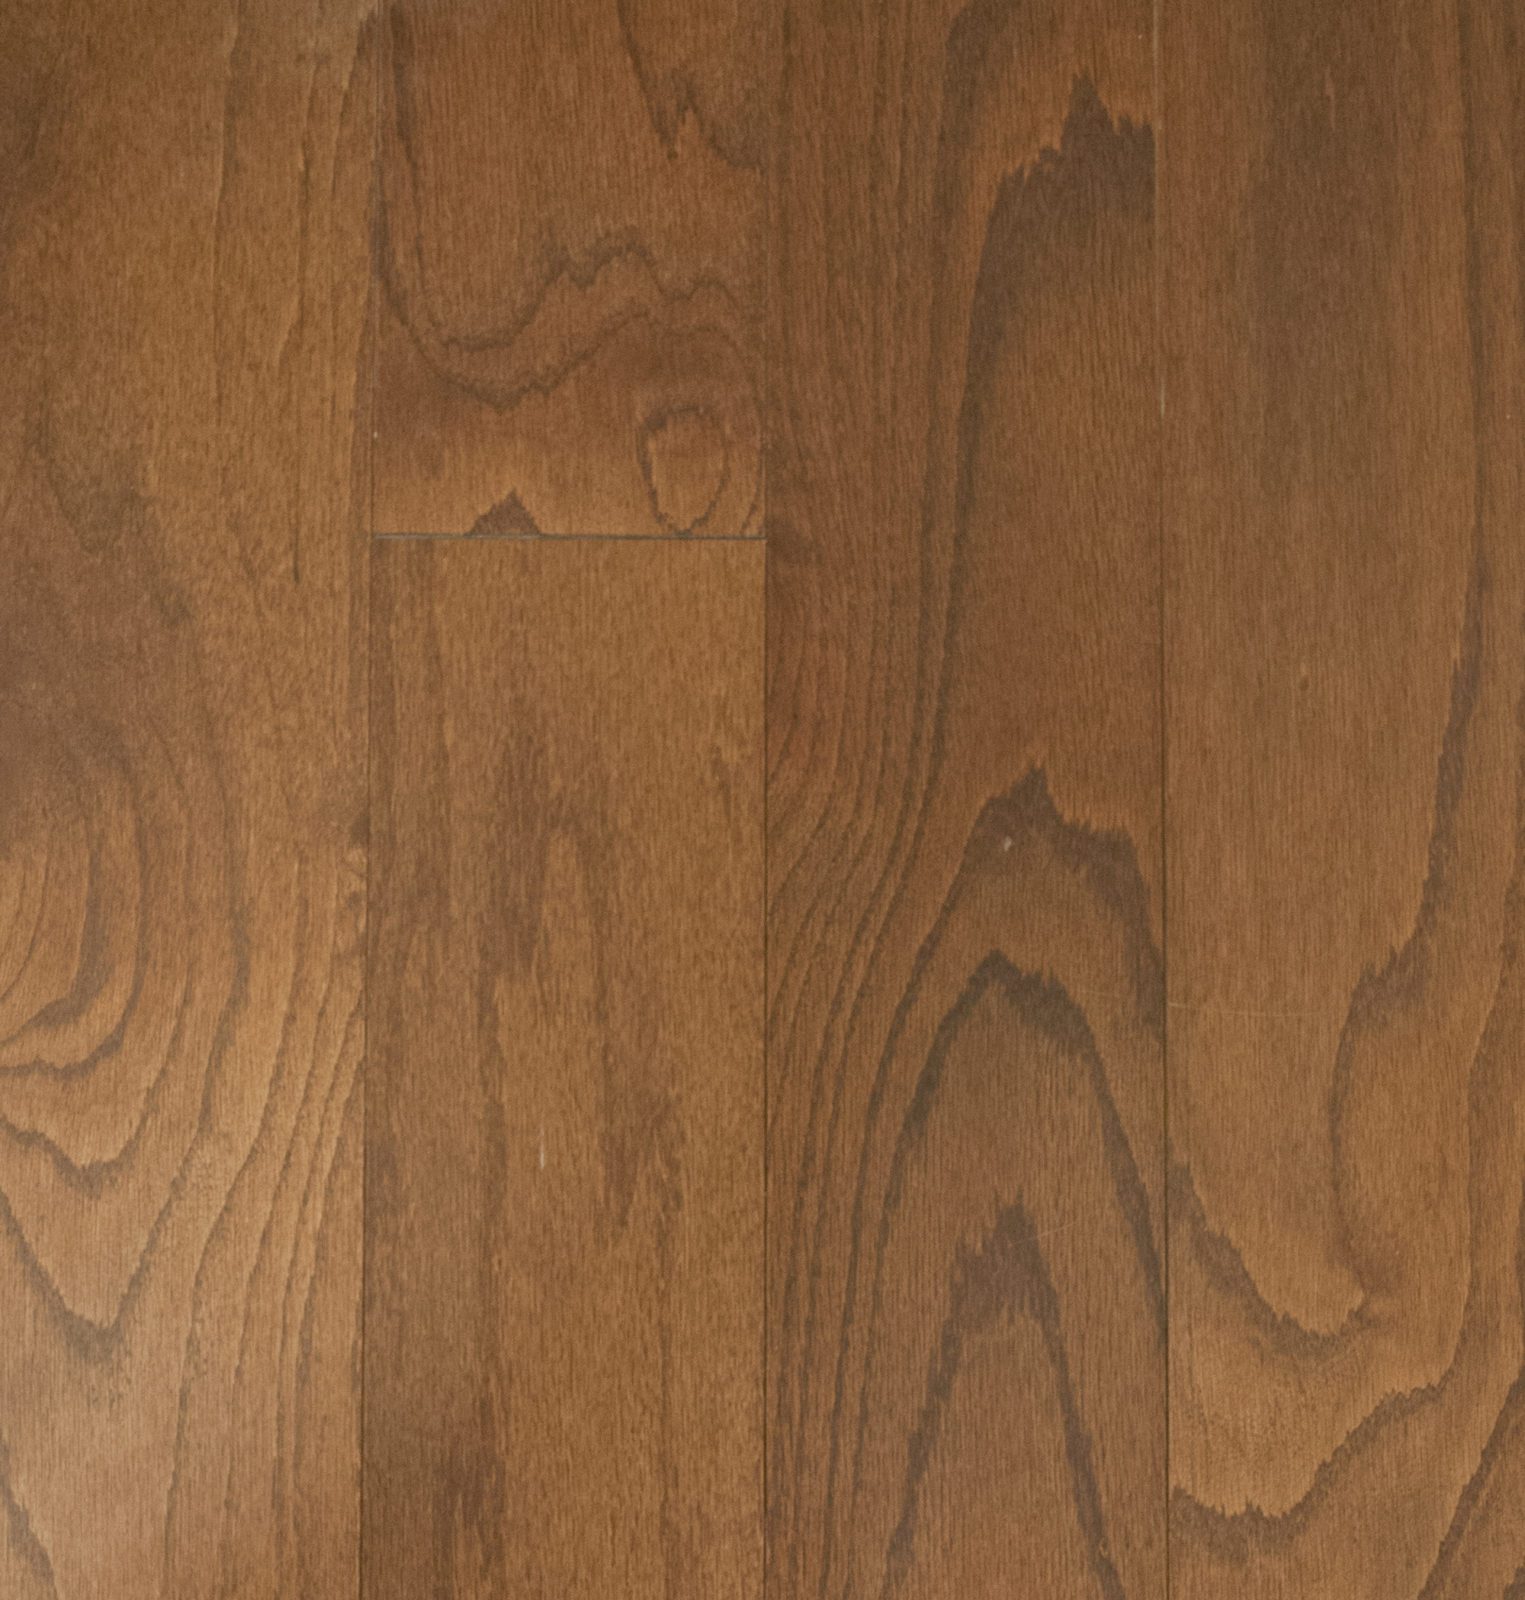 5 Quot X 3 8 Quot Oxford Smooth Oak Engineered Schillings